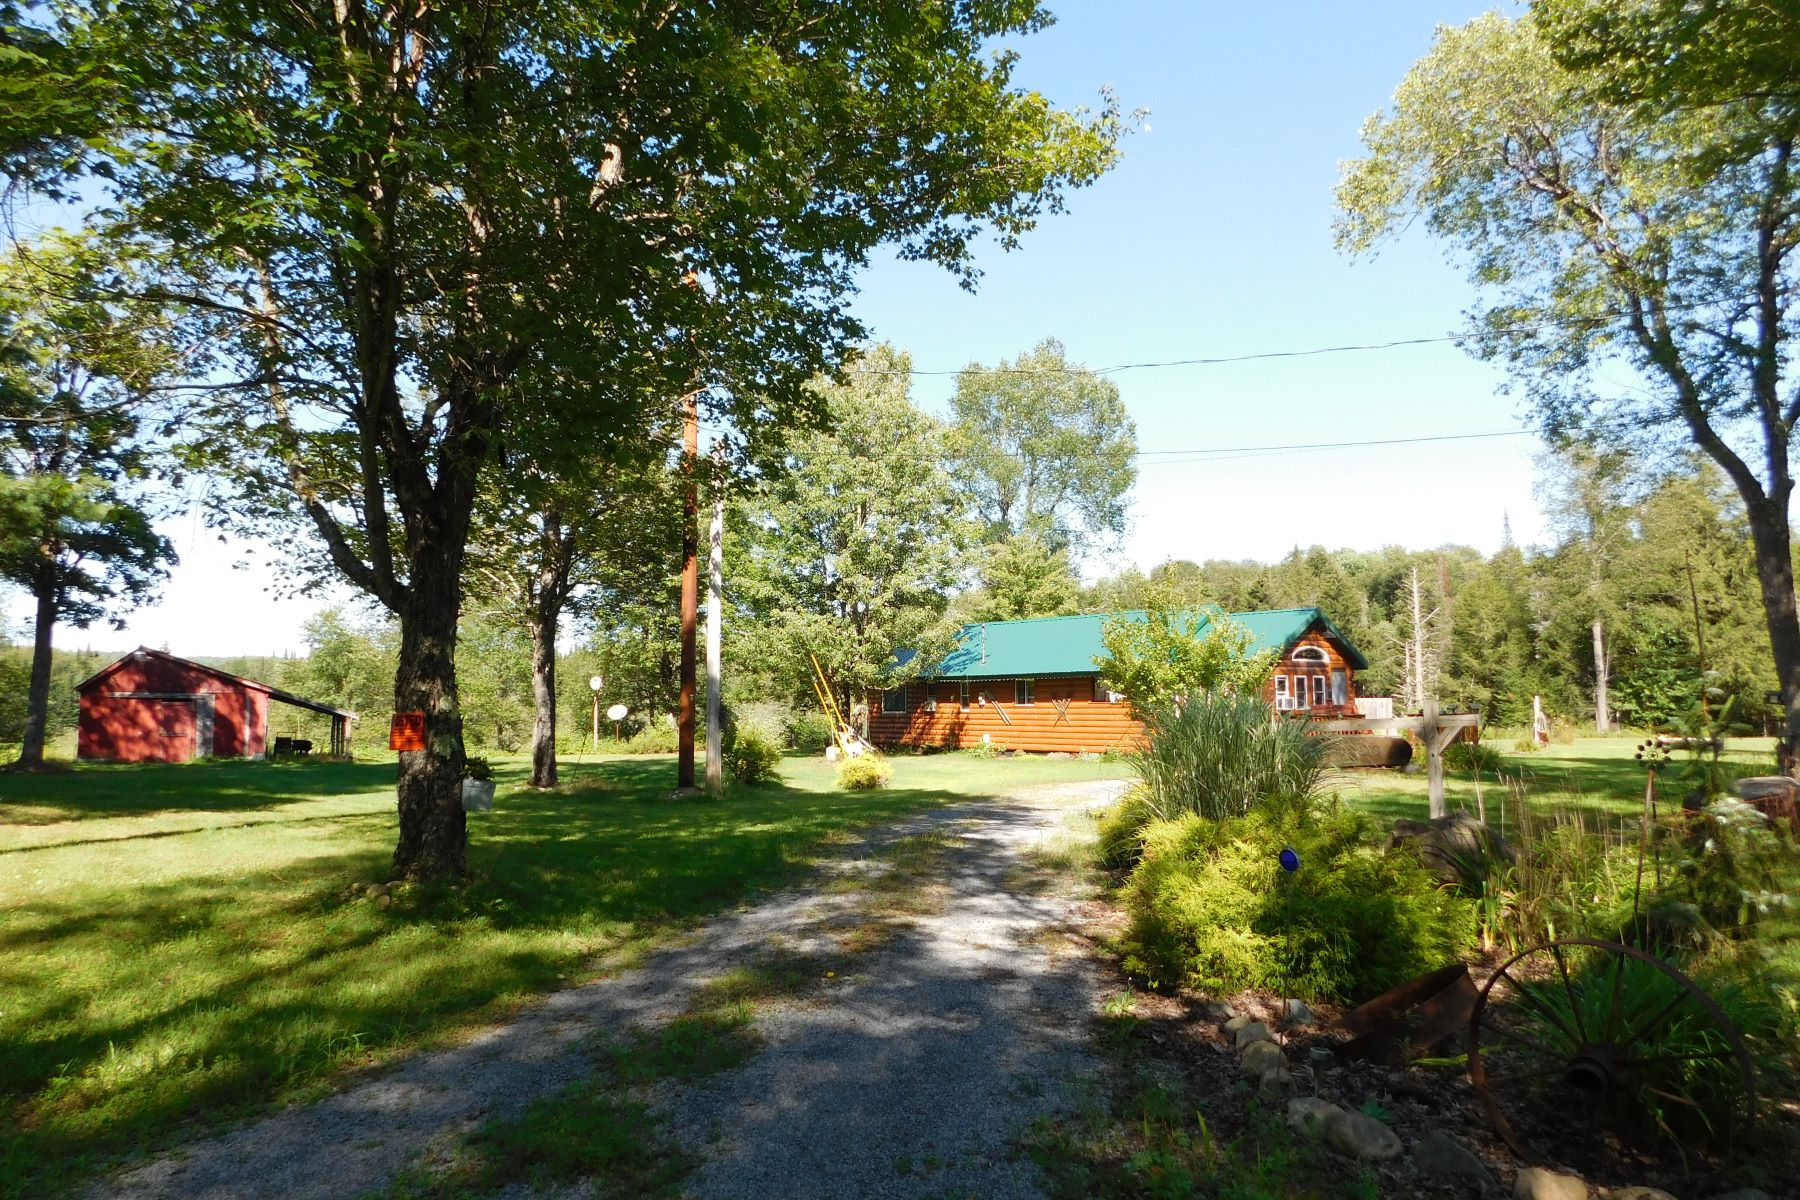 Single Family Homes for Sale at Year round log sided cabin 5071 Sears Rd Woodgate, New York 13494 United States